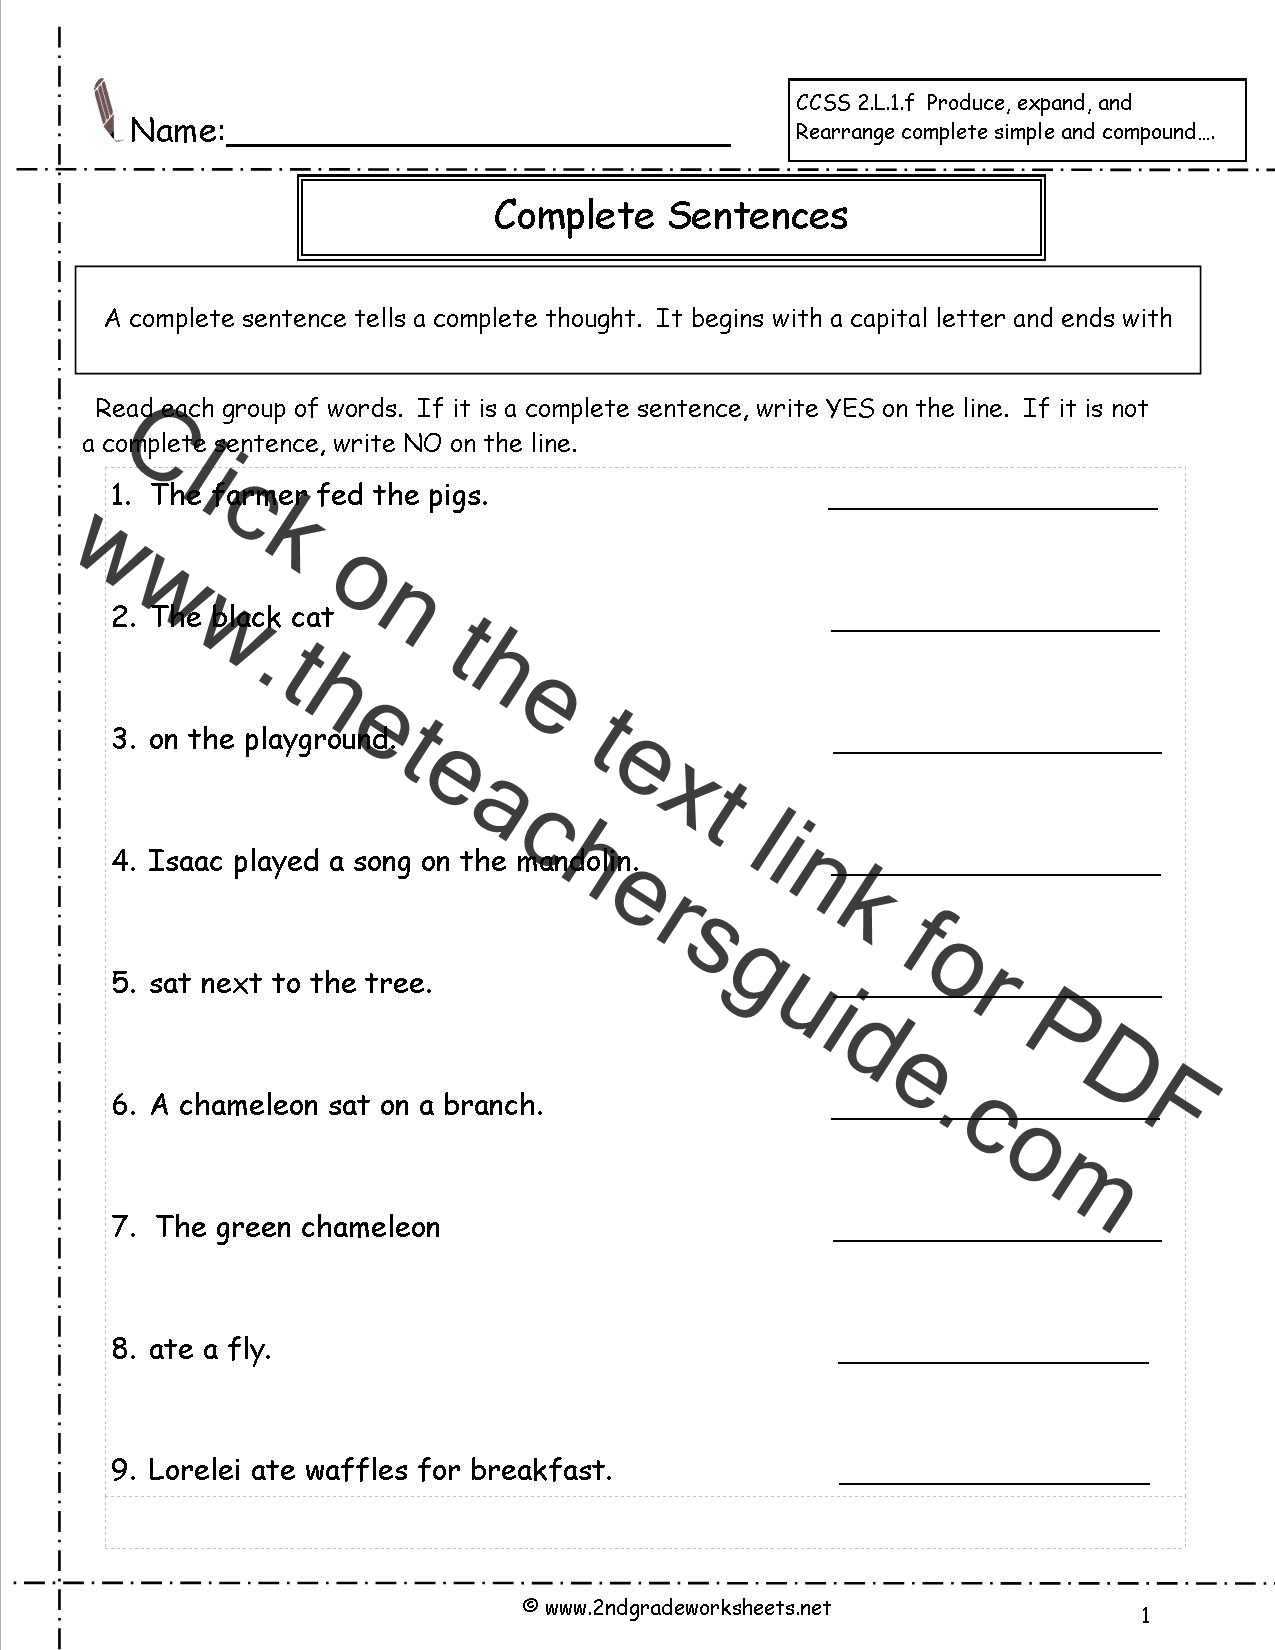 Second Grade Sentences Worksheets CCSS 2L1f Worksheets – Editing Worksheets